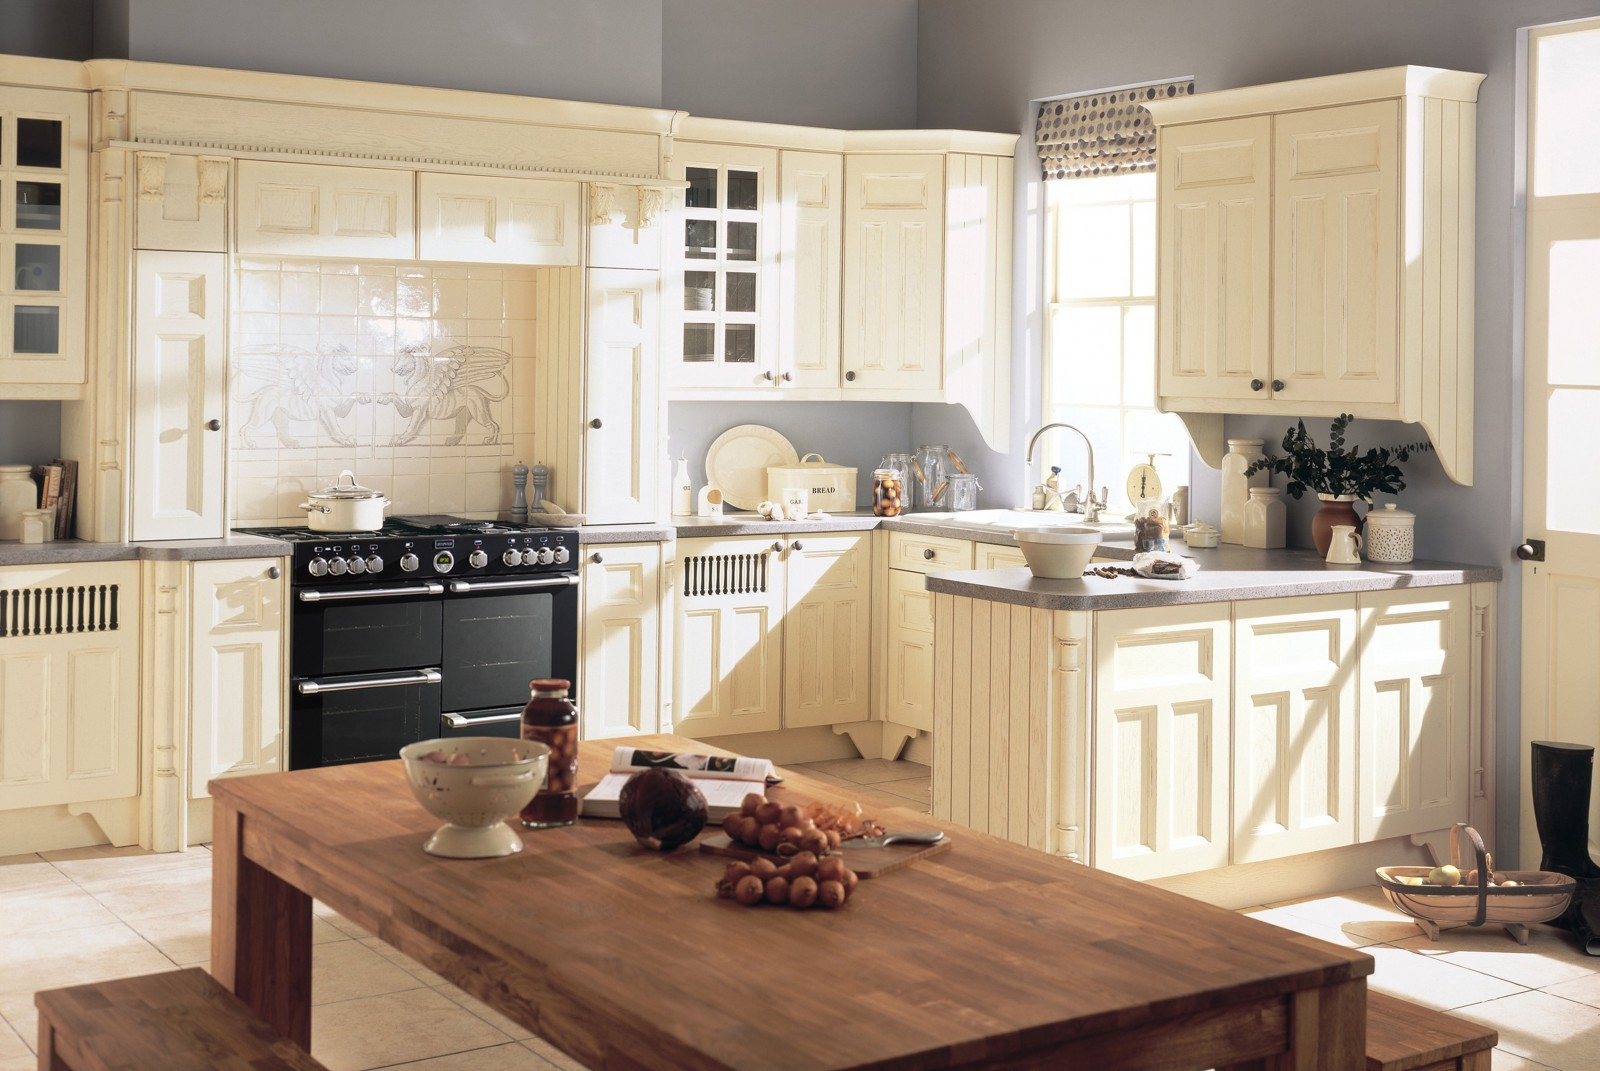 Appliance City - Stoves Hood and Cooker Offer